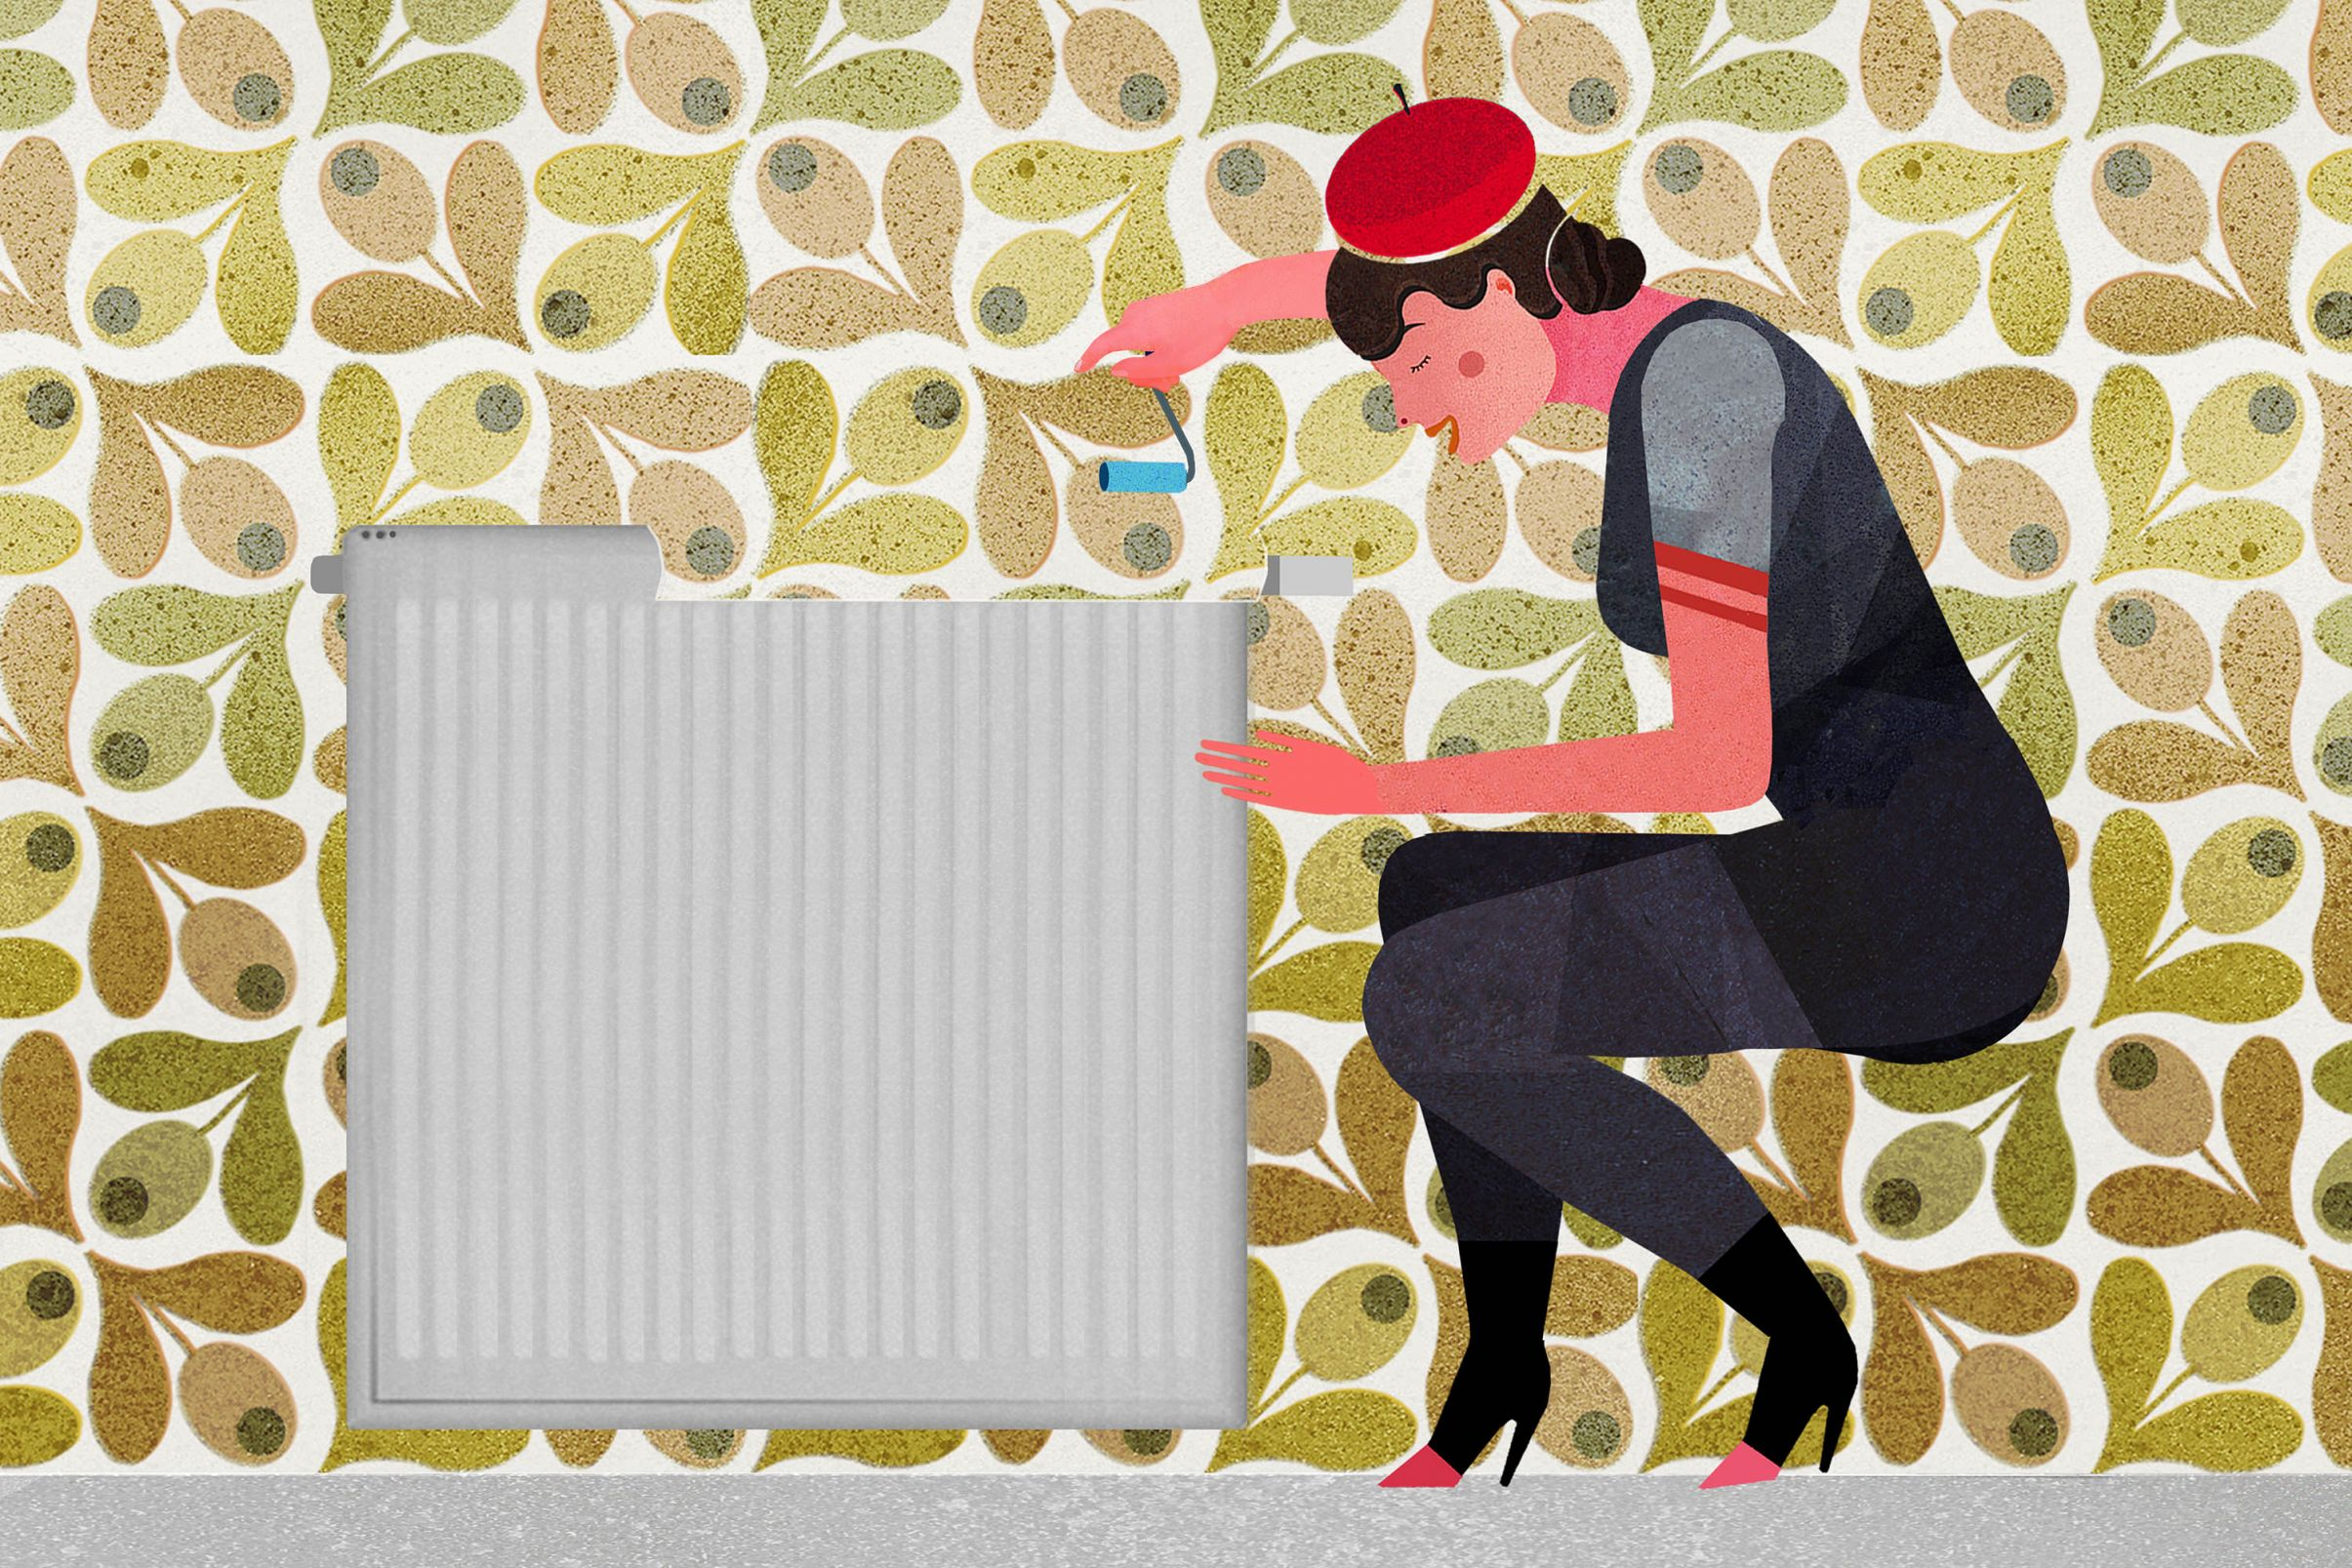 How-to-wallpaper-behind-radiators-Wallpapering-towards-the-edges-of-the-radiator